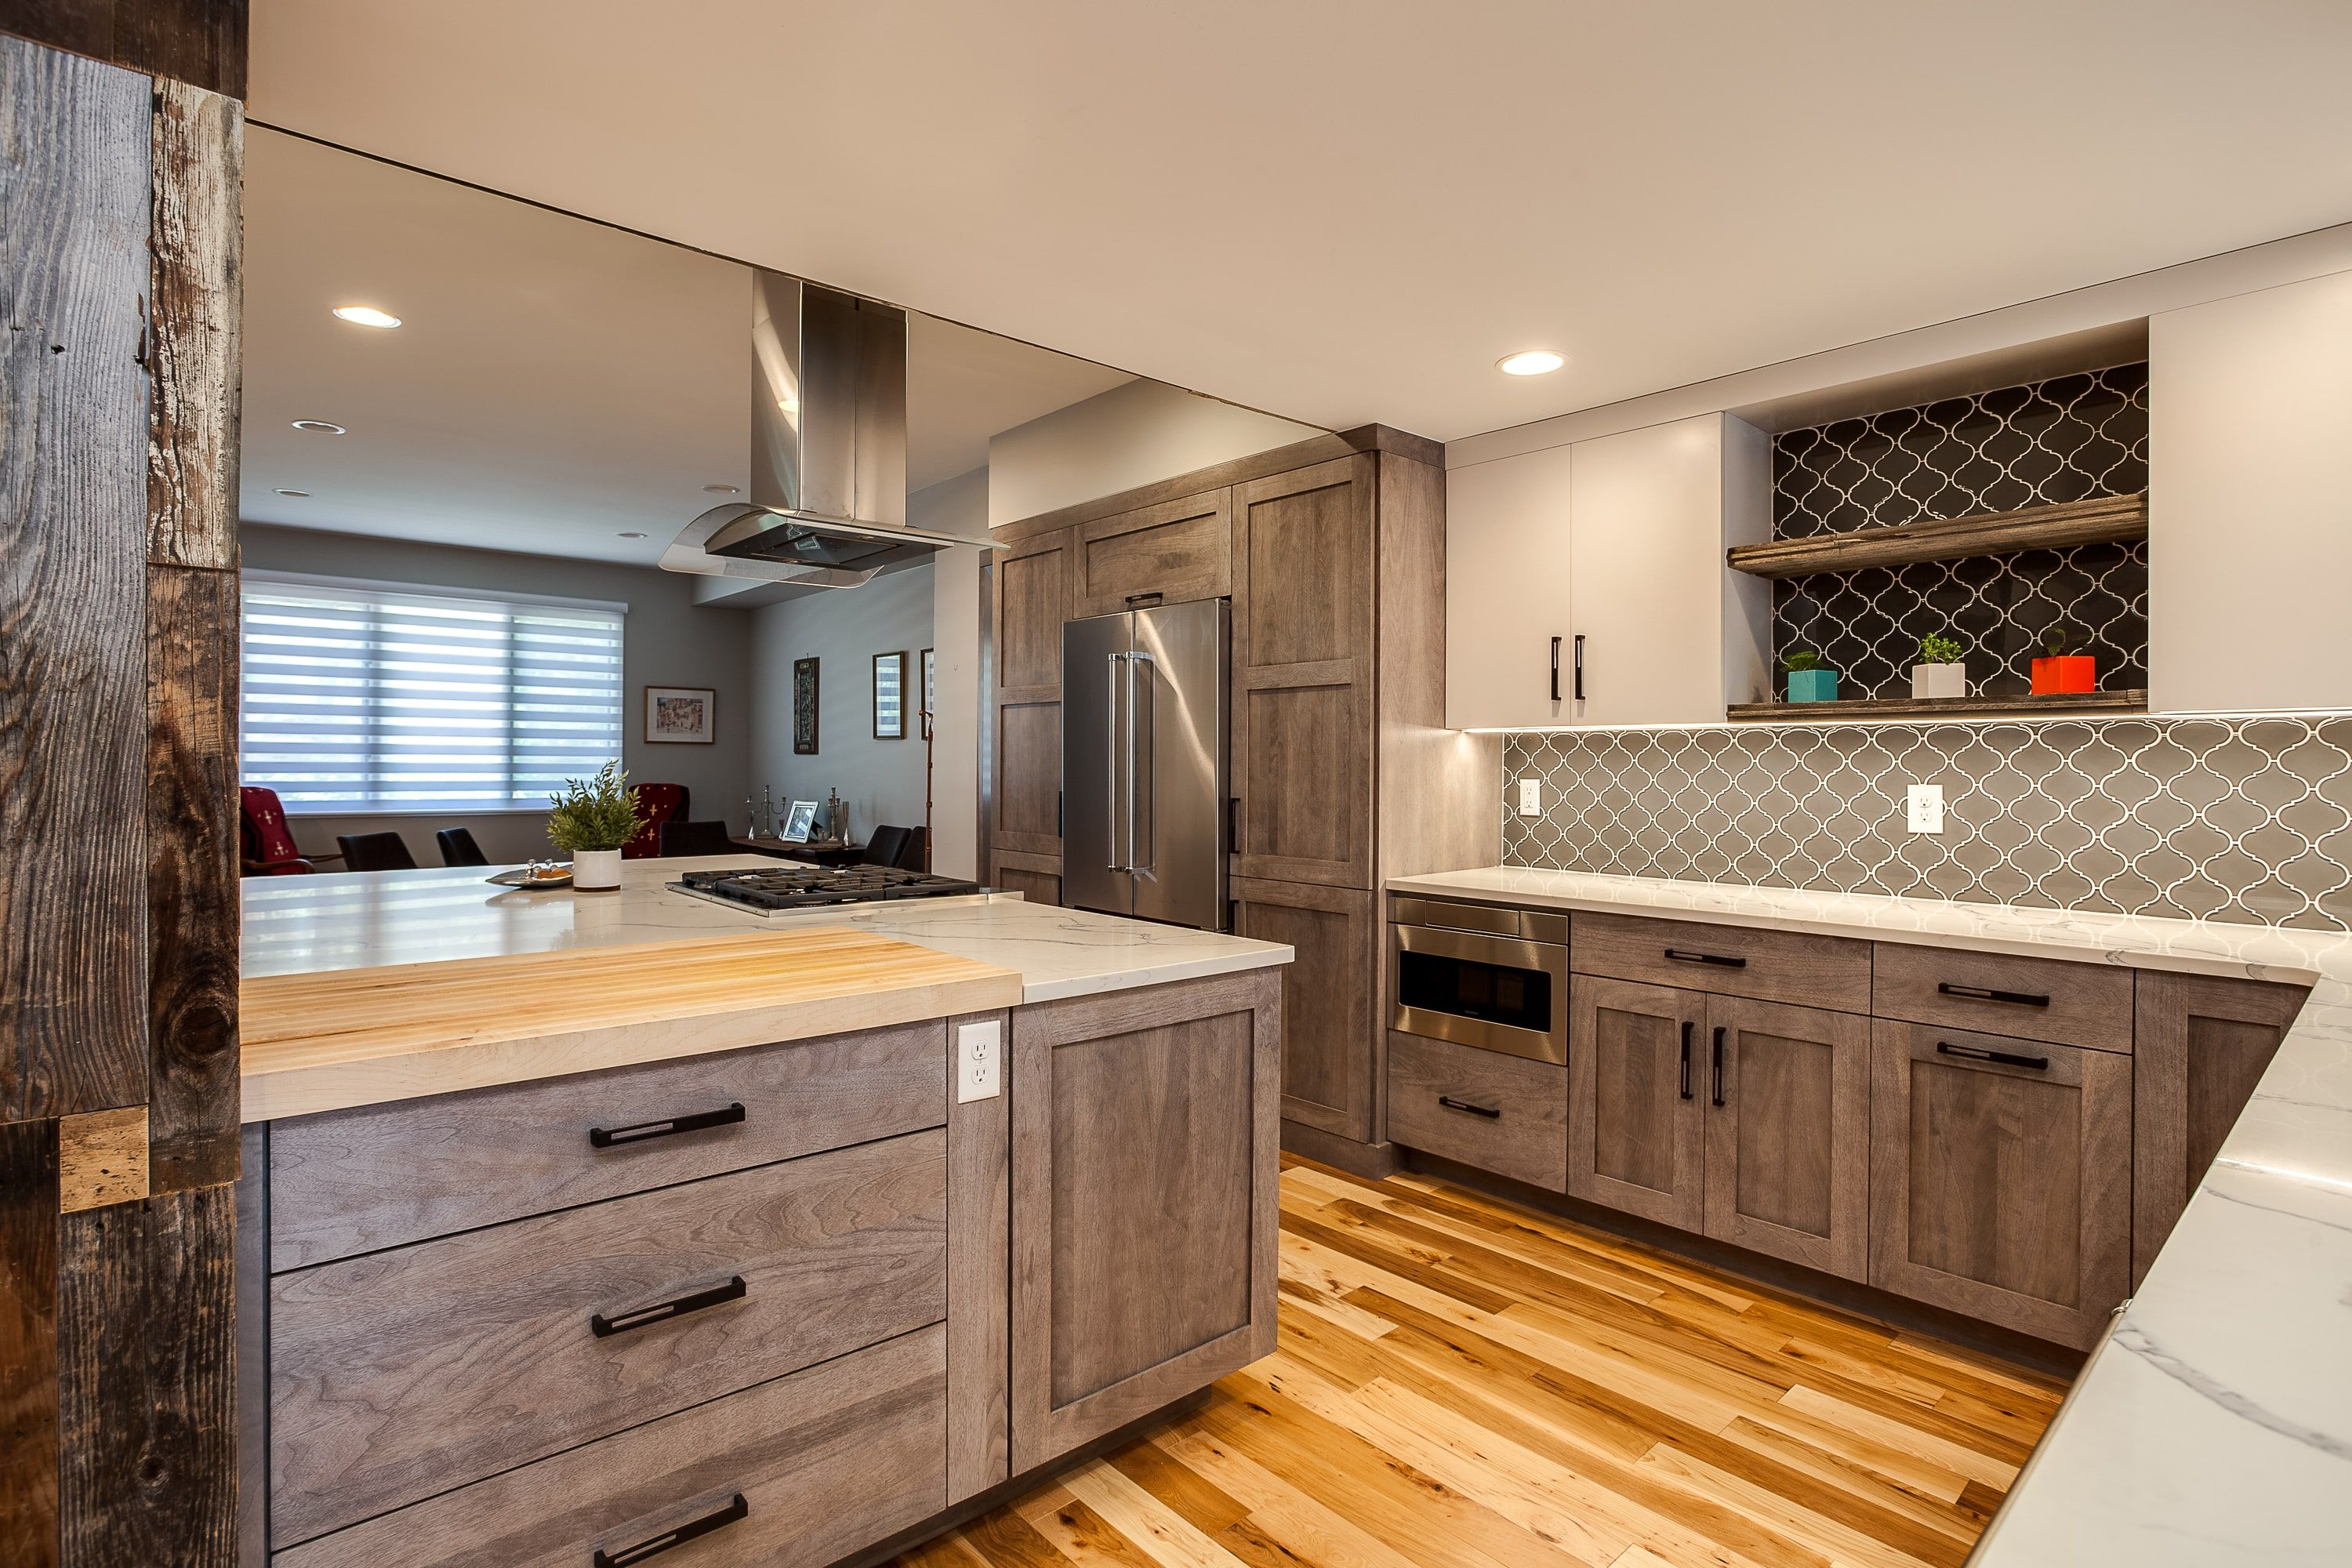 Photo Gallery - JM Kitchen and Bath | Kitchen Rustic Designs for ...